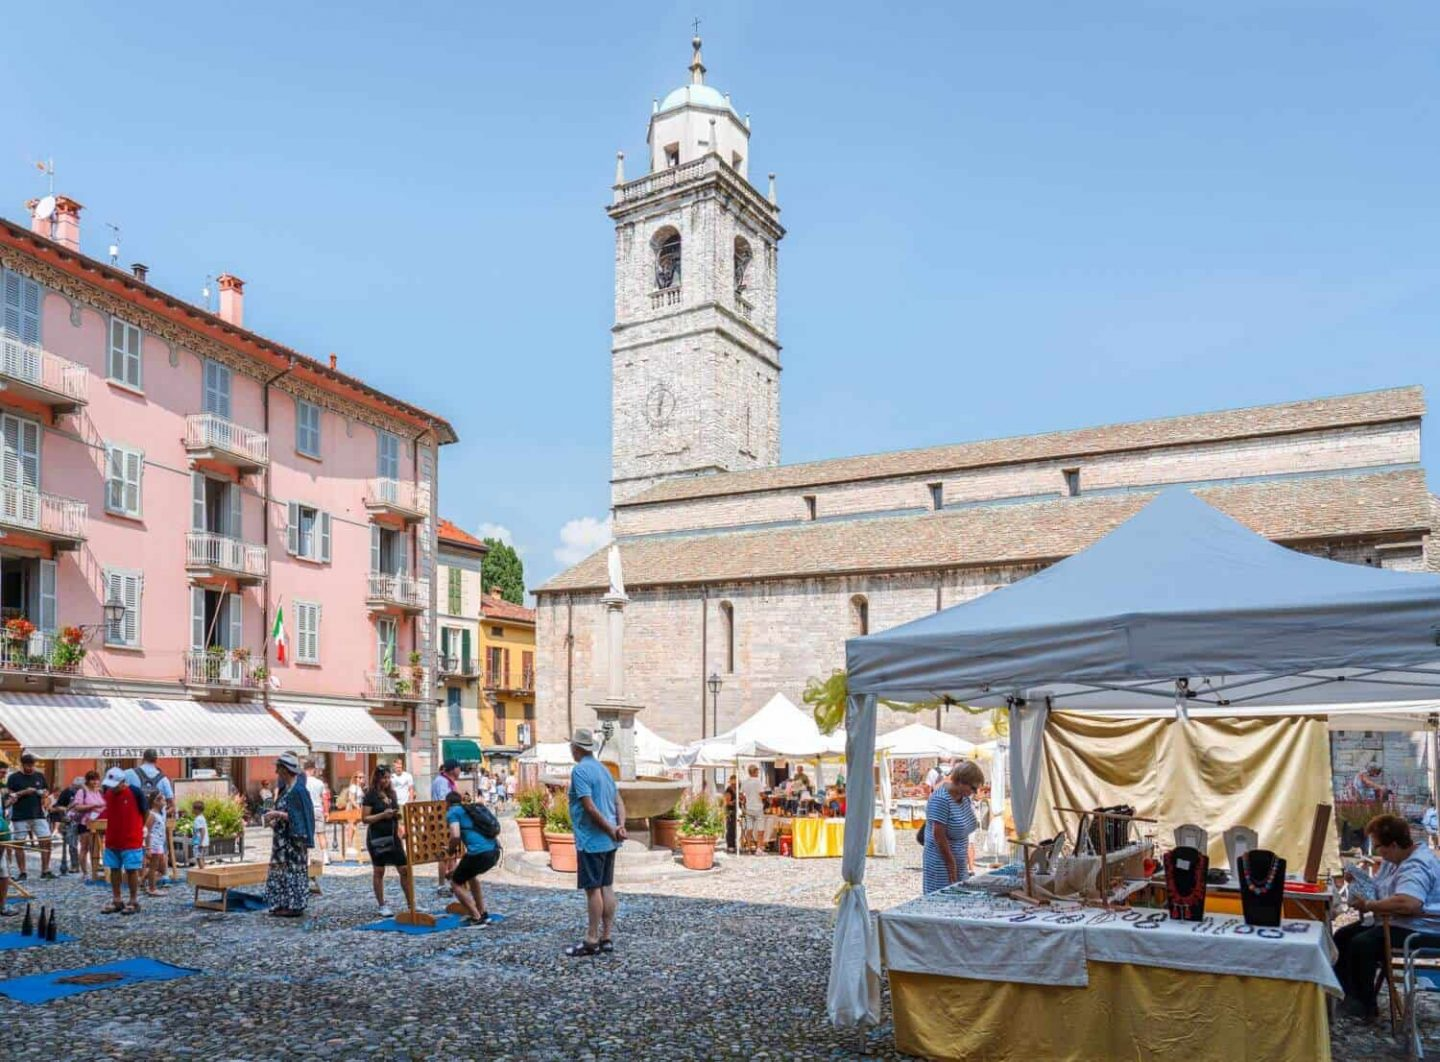 Piazza della Chiesa and Basilica of San Giacomo in the town centre of Bellagio Lake Como